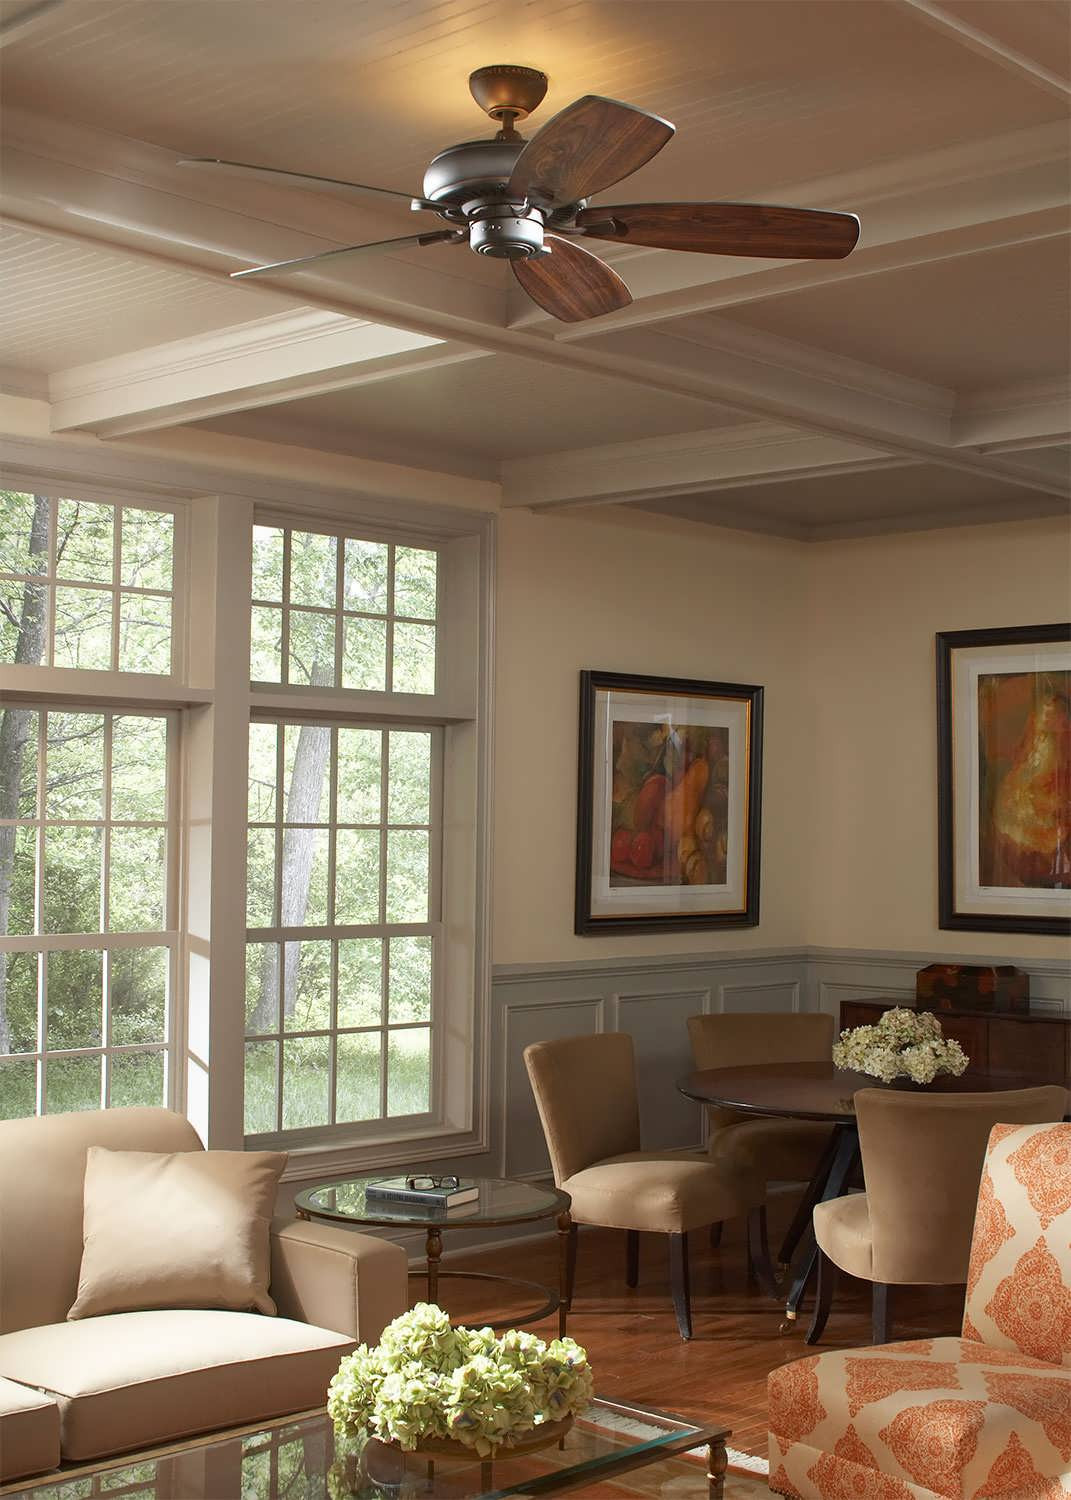 Best ideas about Living Room Ceiling Fan . Save or Pin Living Room Gazebo Ceiling Fan Top Rated Ceiling Fans Now.